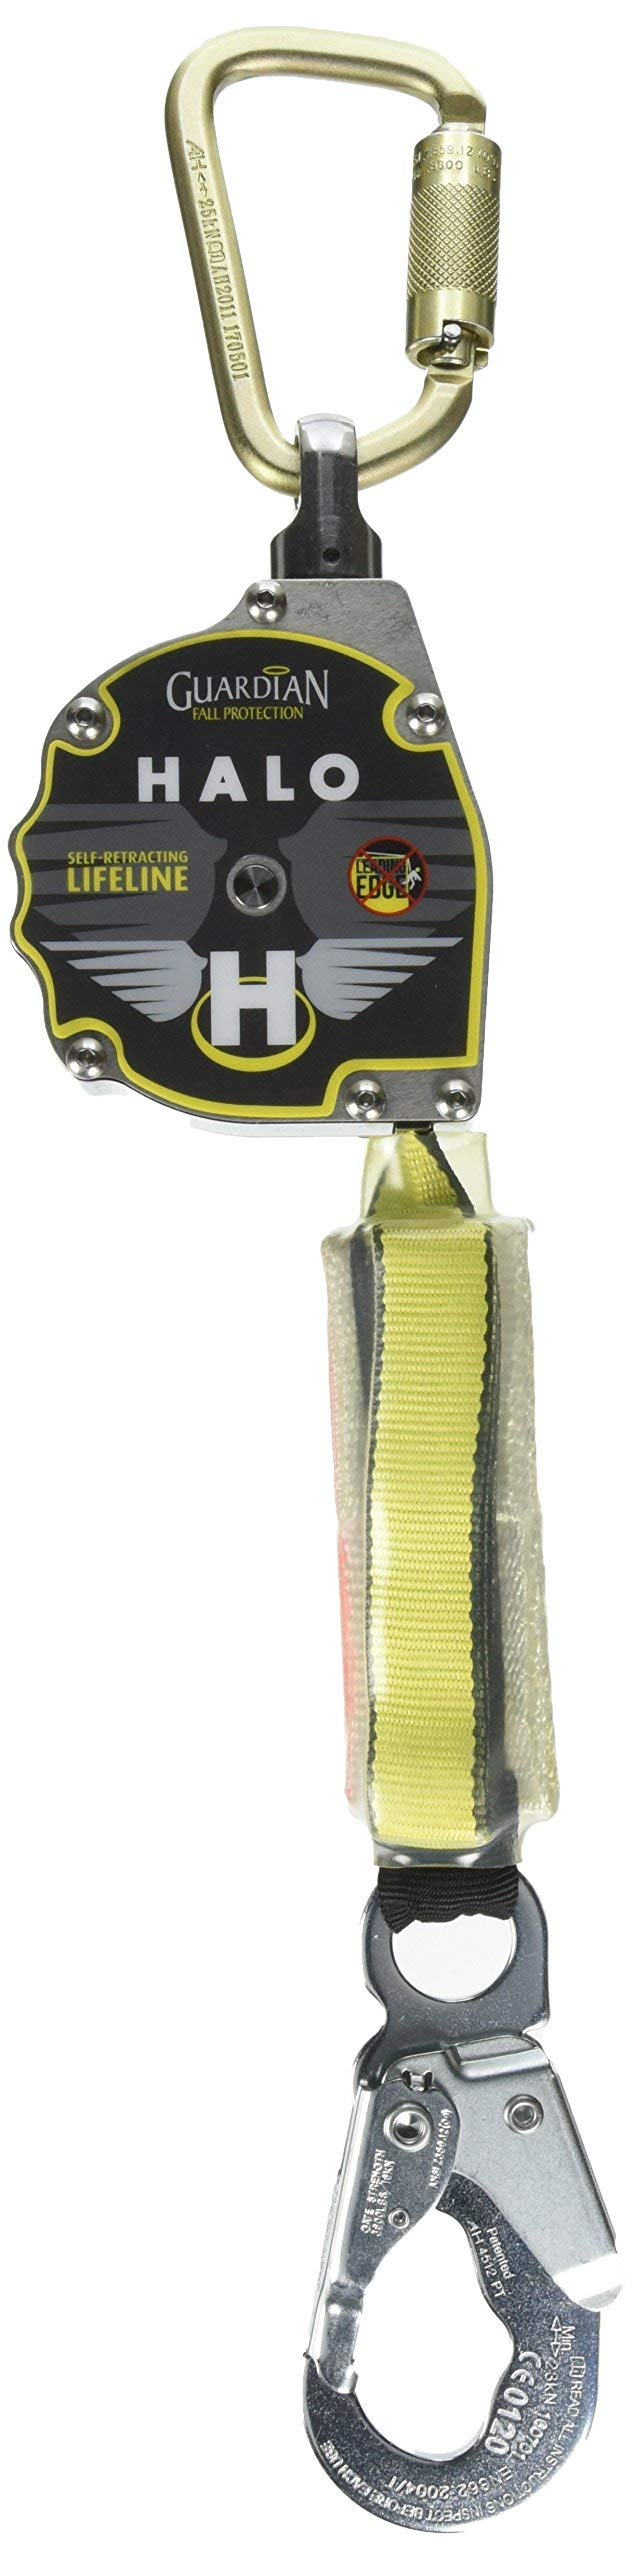 Guardian Fall Protection 10900 11-Foot 1-Inch Nylon Webbing with Carabineer (Renewed) by Guardian Fall Protection